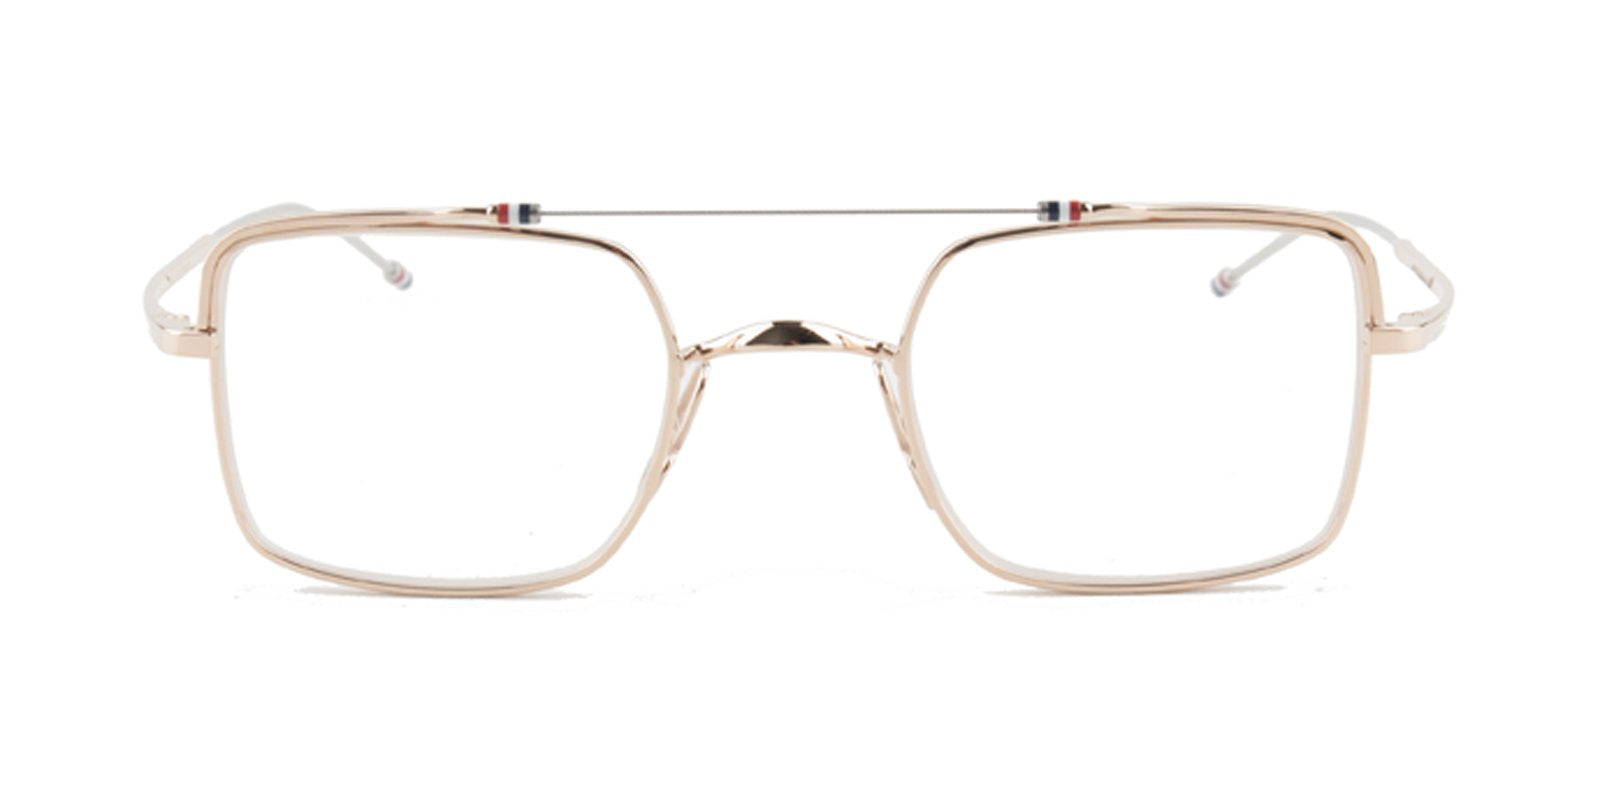 Thom Browne - TB909 Gold Rectangular Unisex Eyeglasses - 44mm-Eyeglasses-Designer Eyes